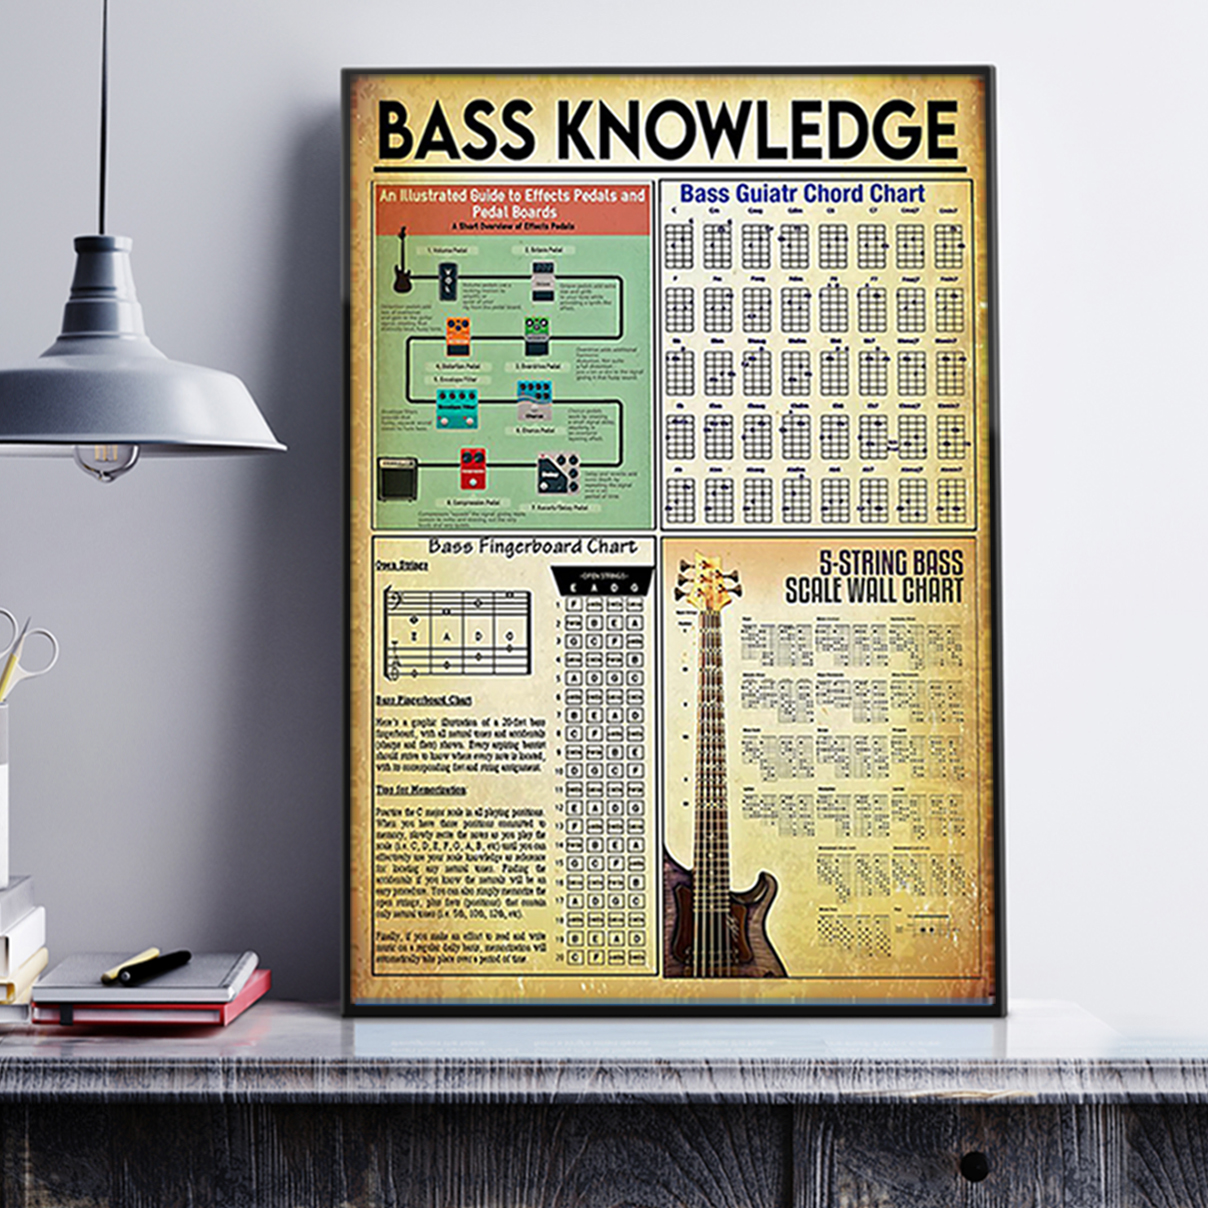 Bass guitar knowledge poster A3